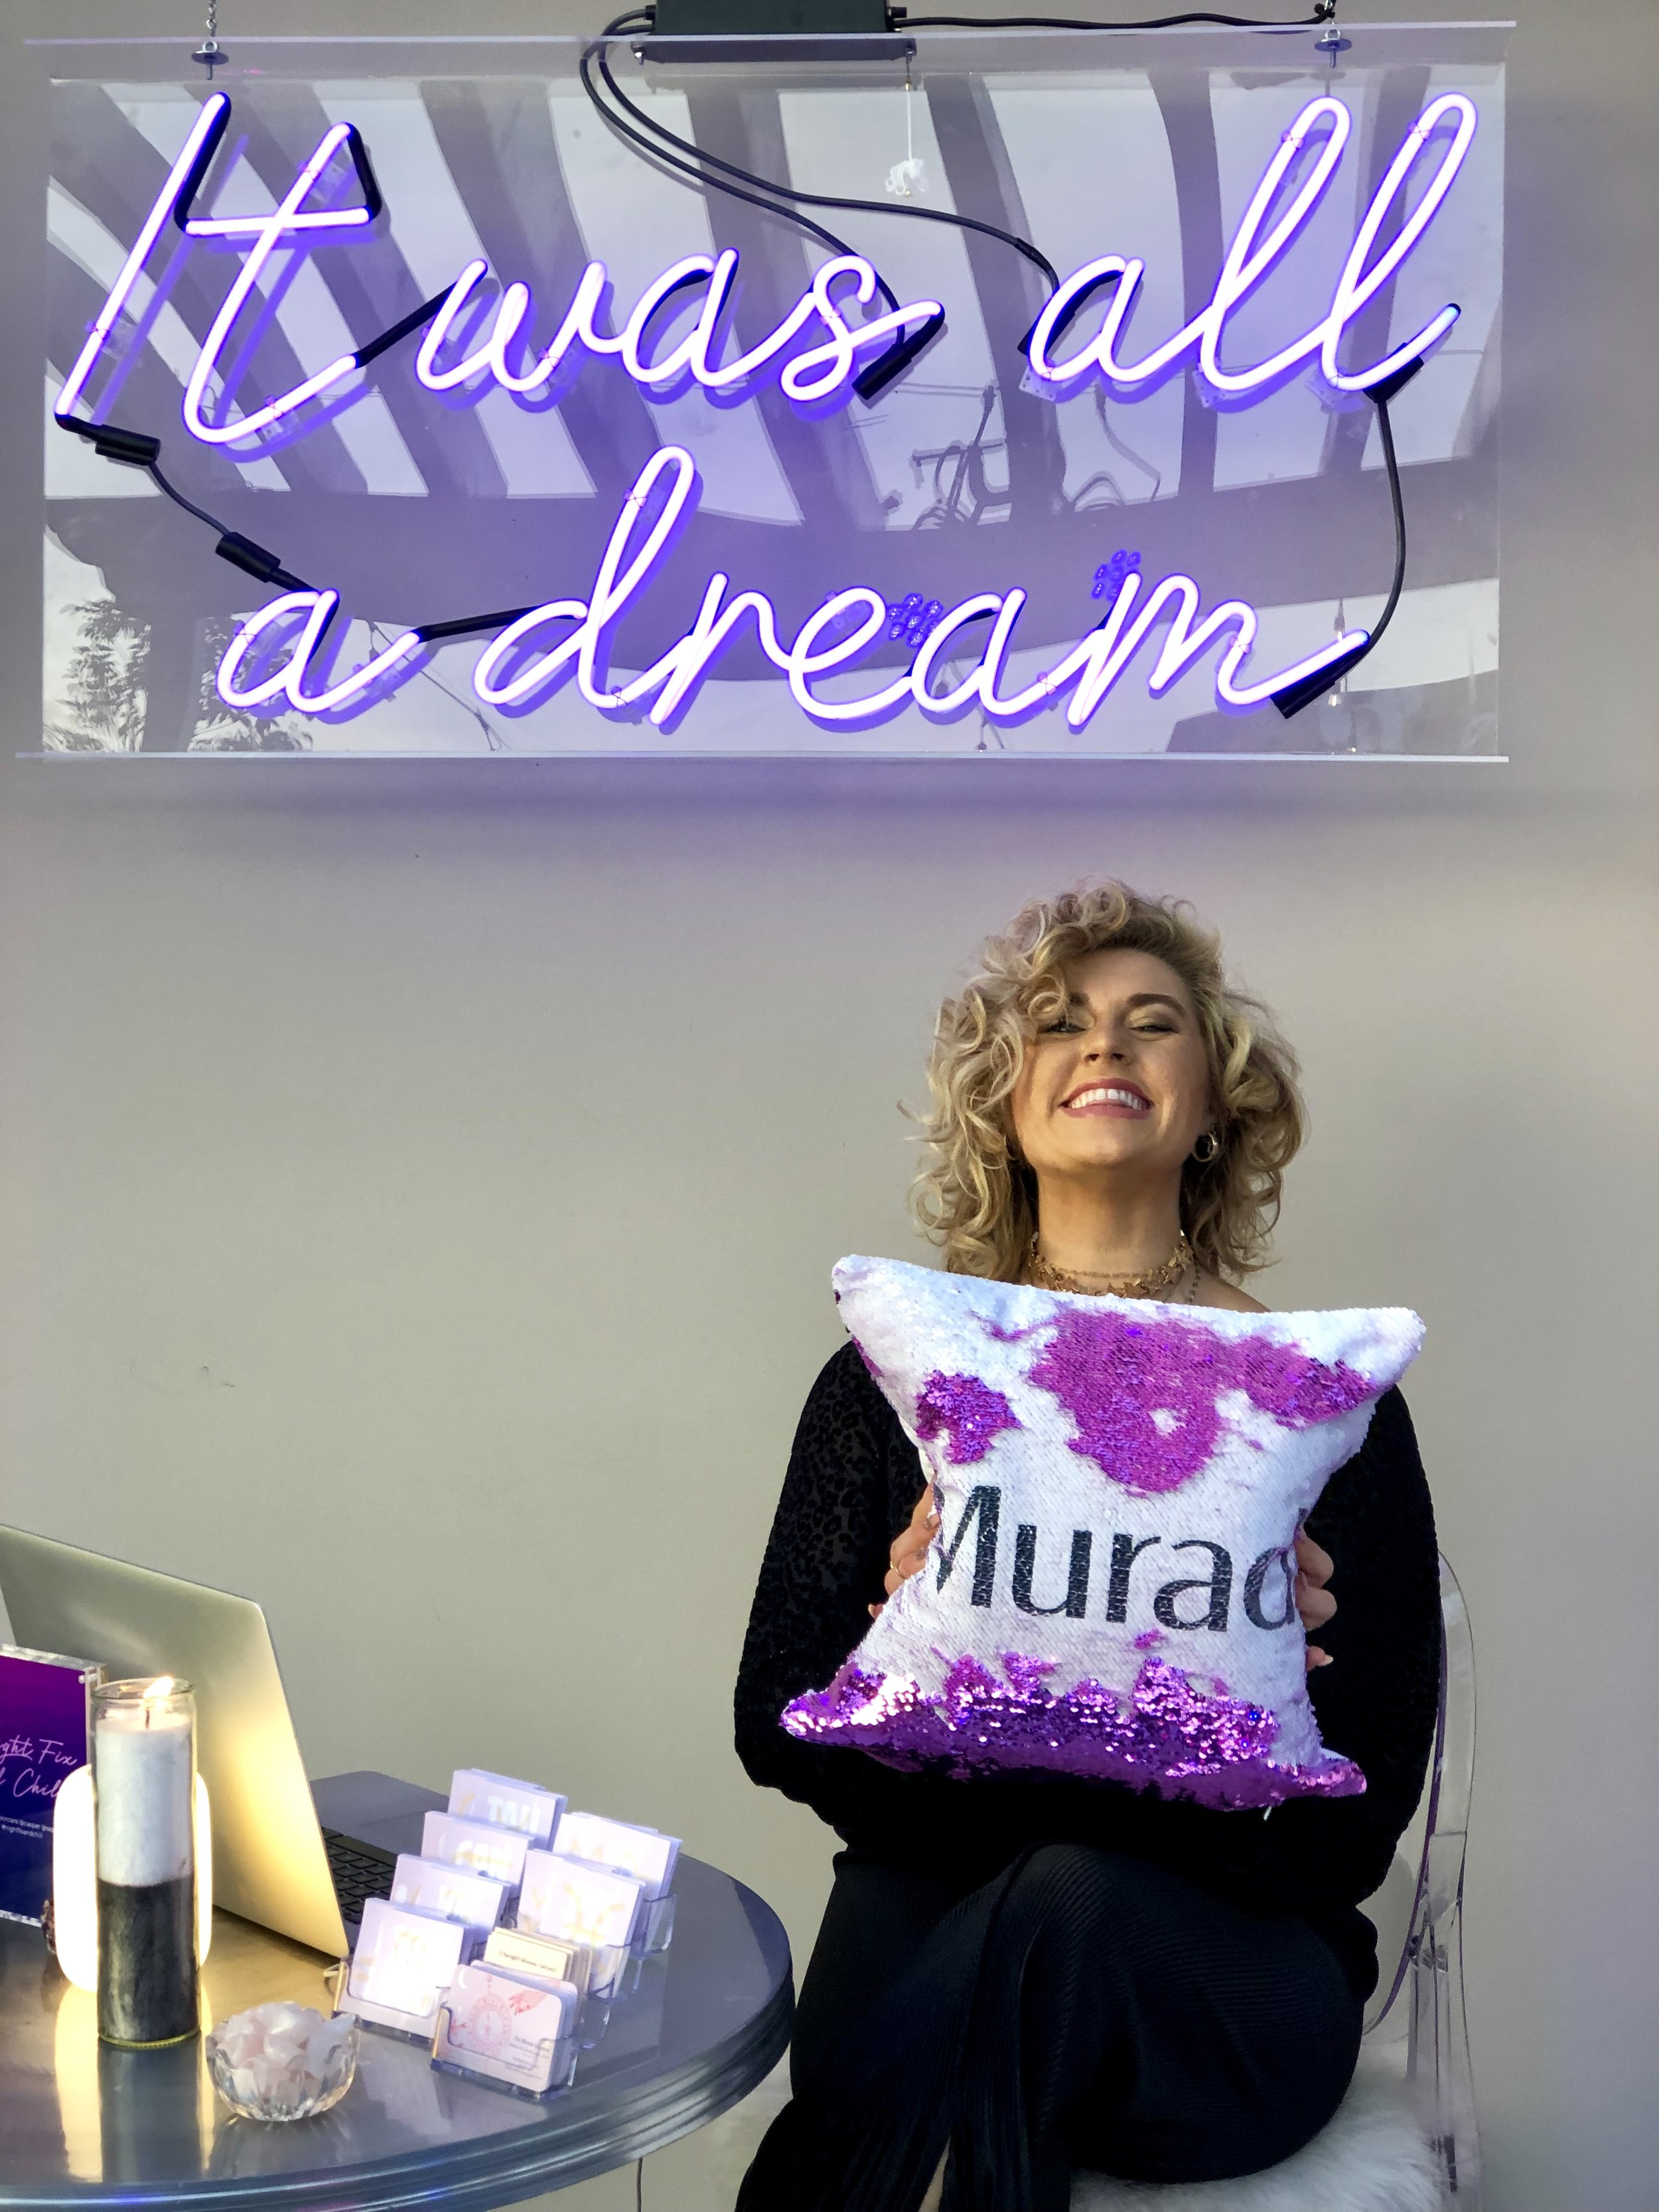 Mini Astrology Readings for Murad Product Launch 2.26.19 - 1.30.19- The most magical night partnered with one of my favorite skincare brands. I did mini sun and moon astrology reading fro the guests in Hollywood and had so much fun it does feel like a dream!